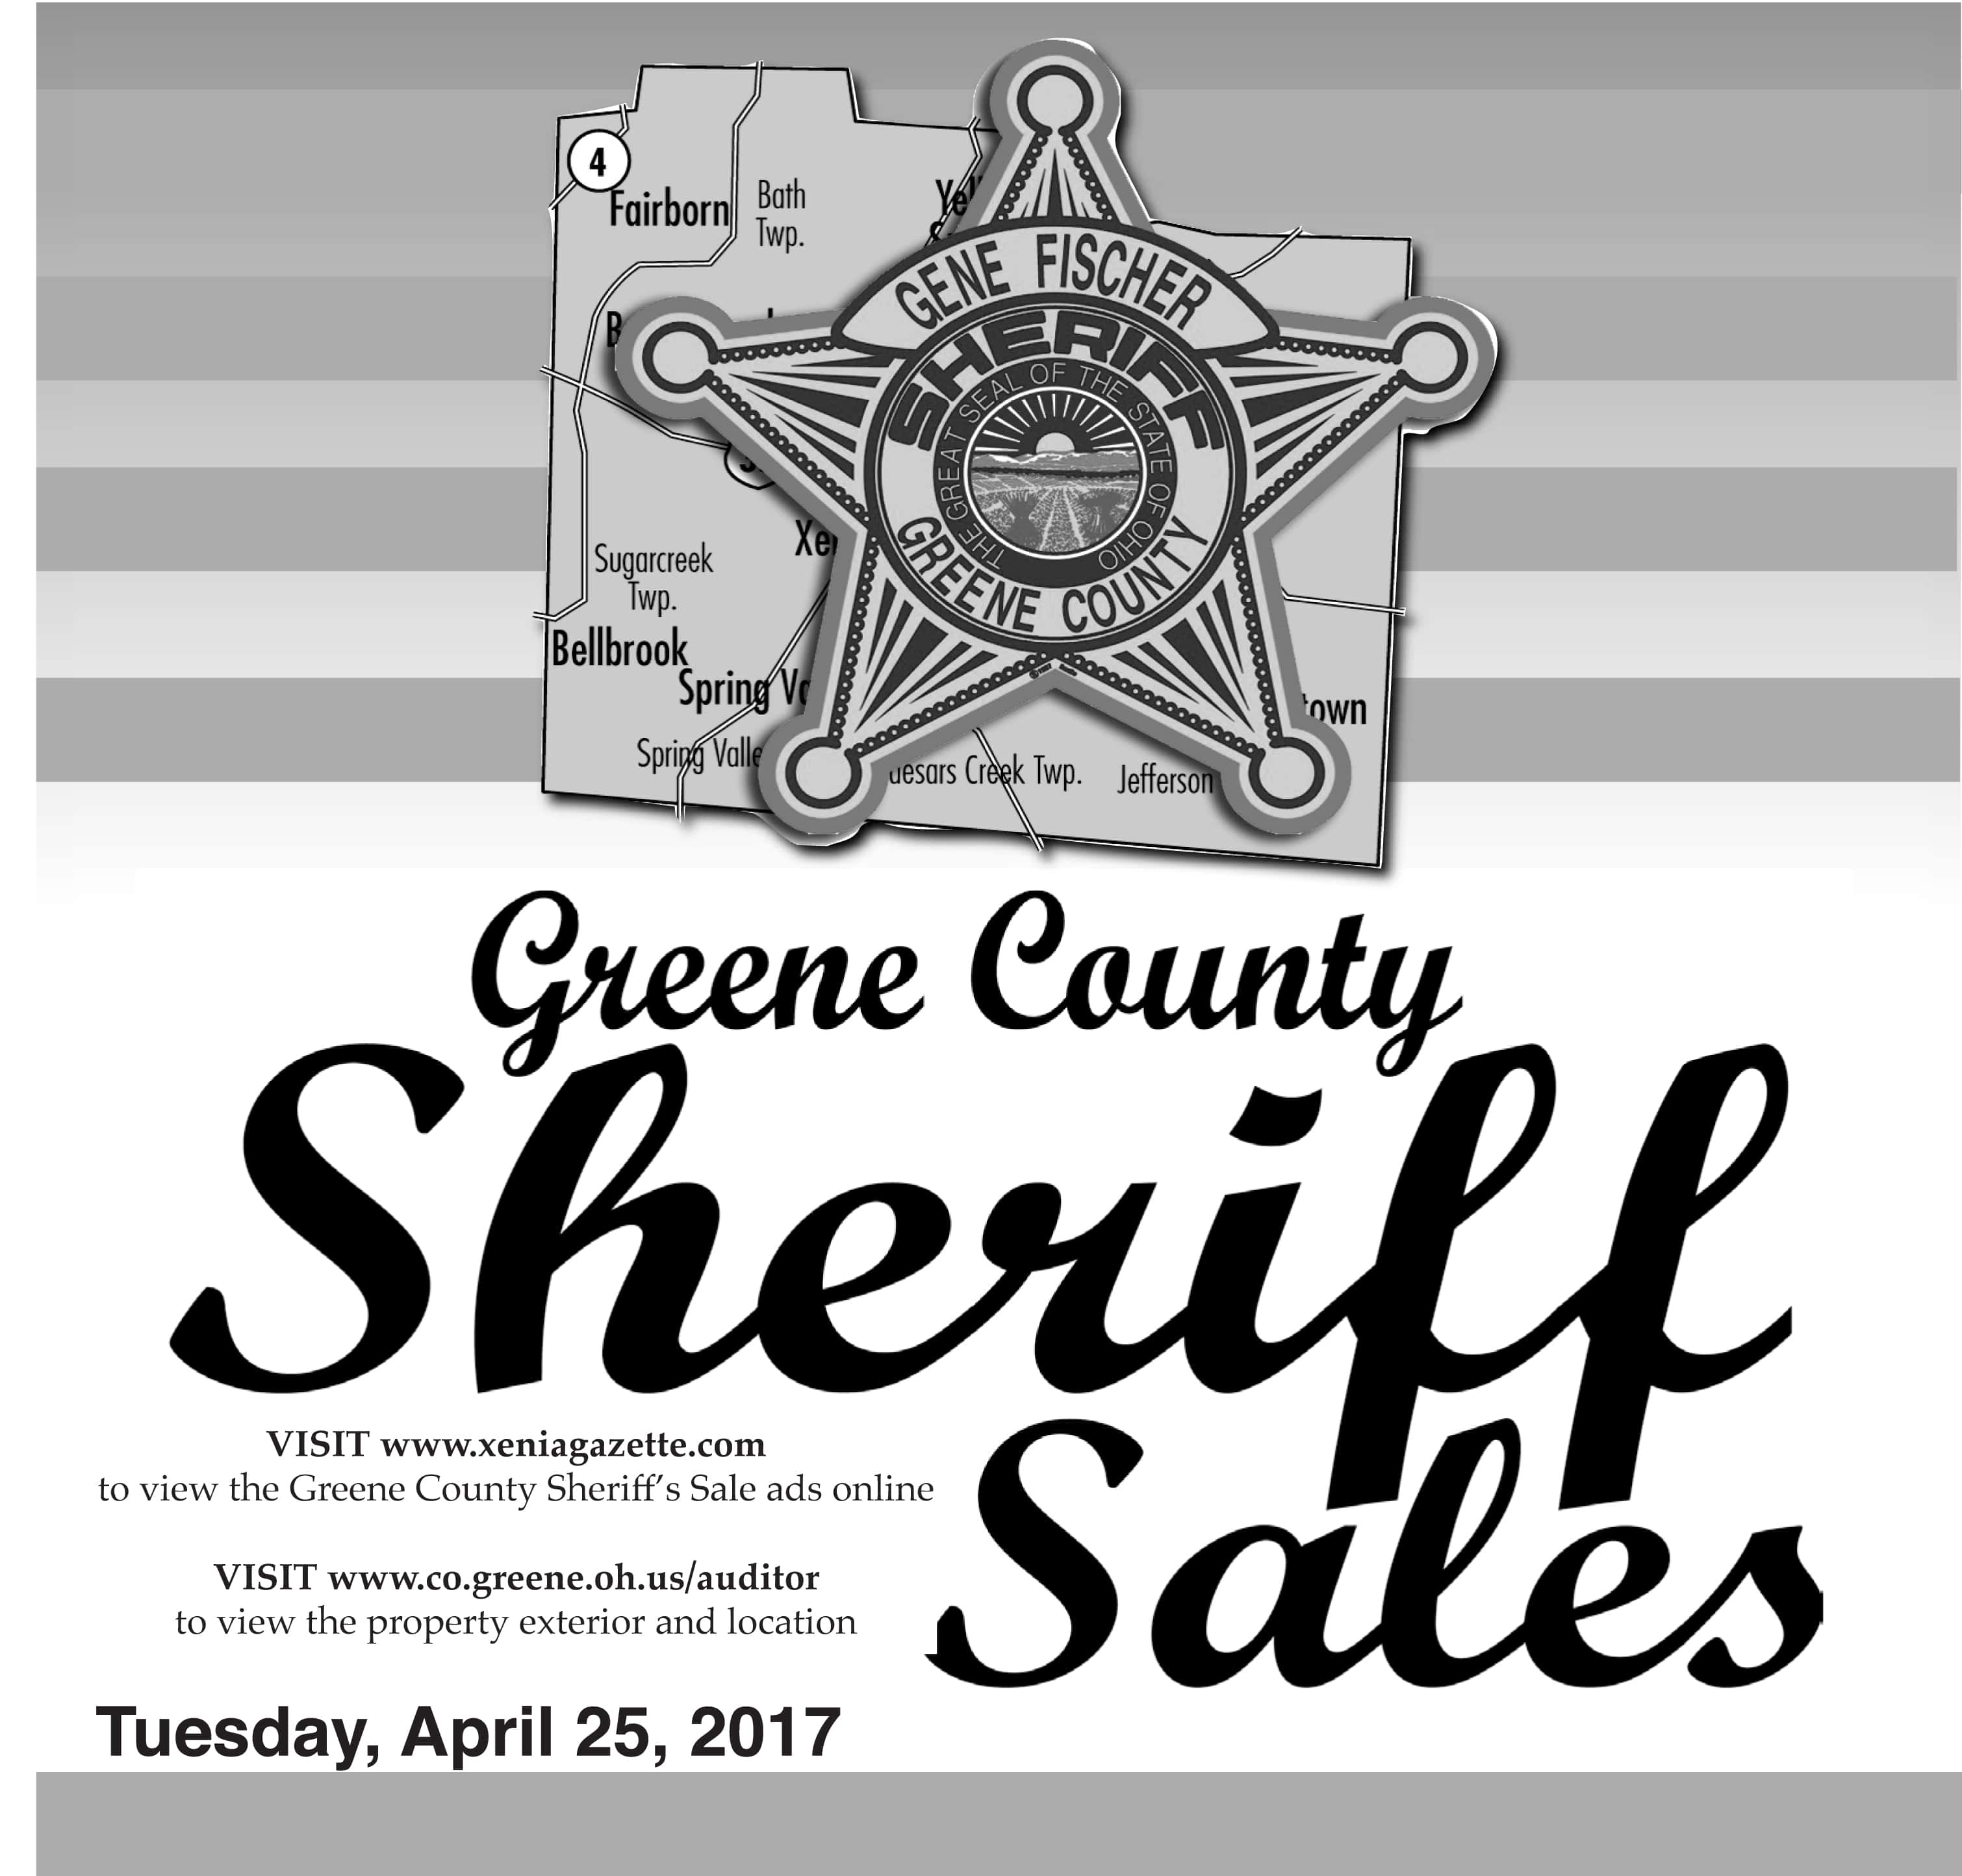 Sheriff Sales: April 25, 2017